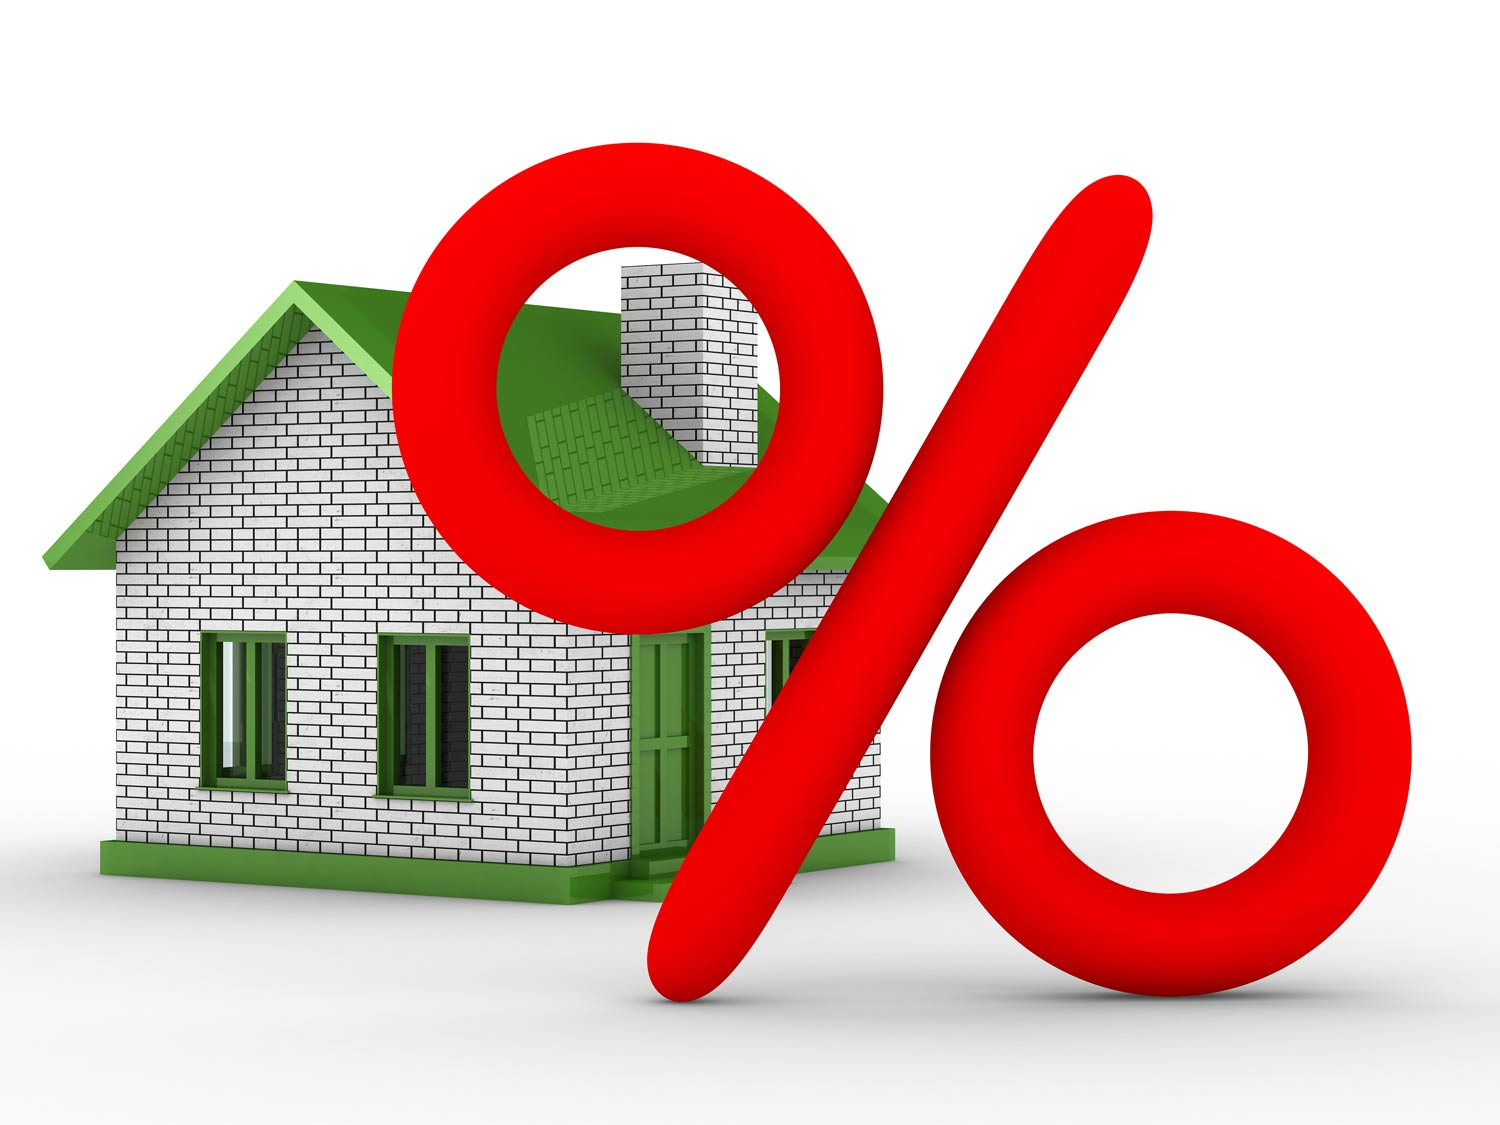 fha interest rates december 2015 five stars mortgage loan